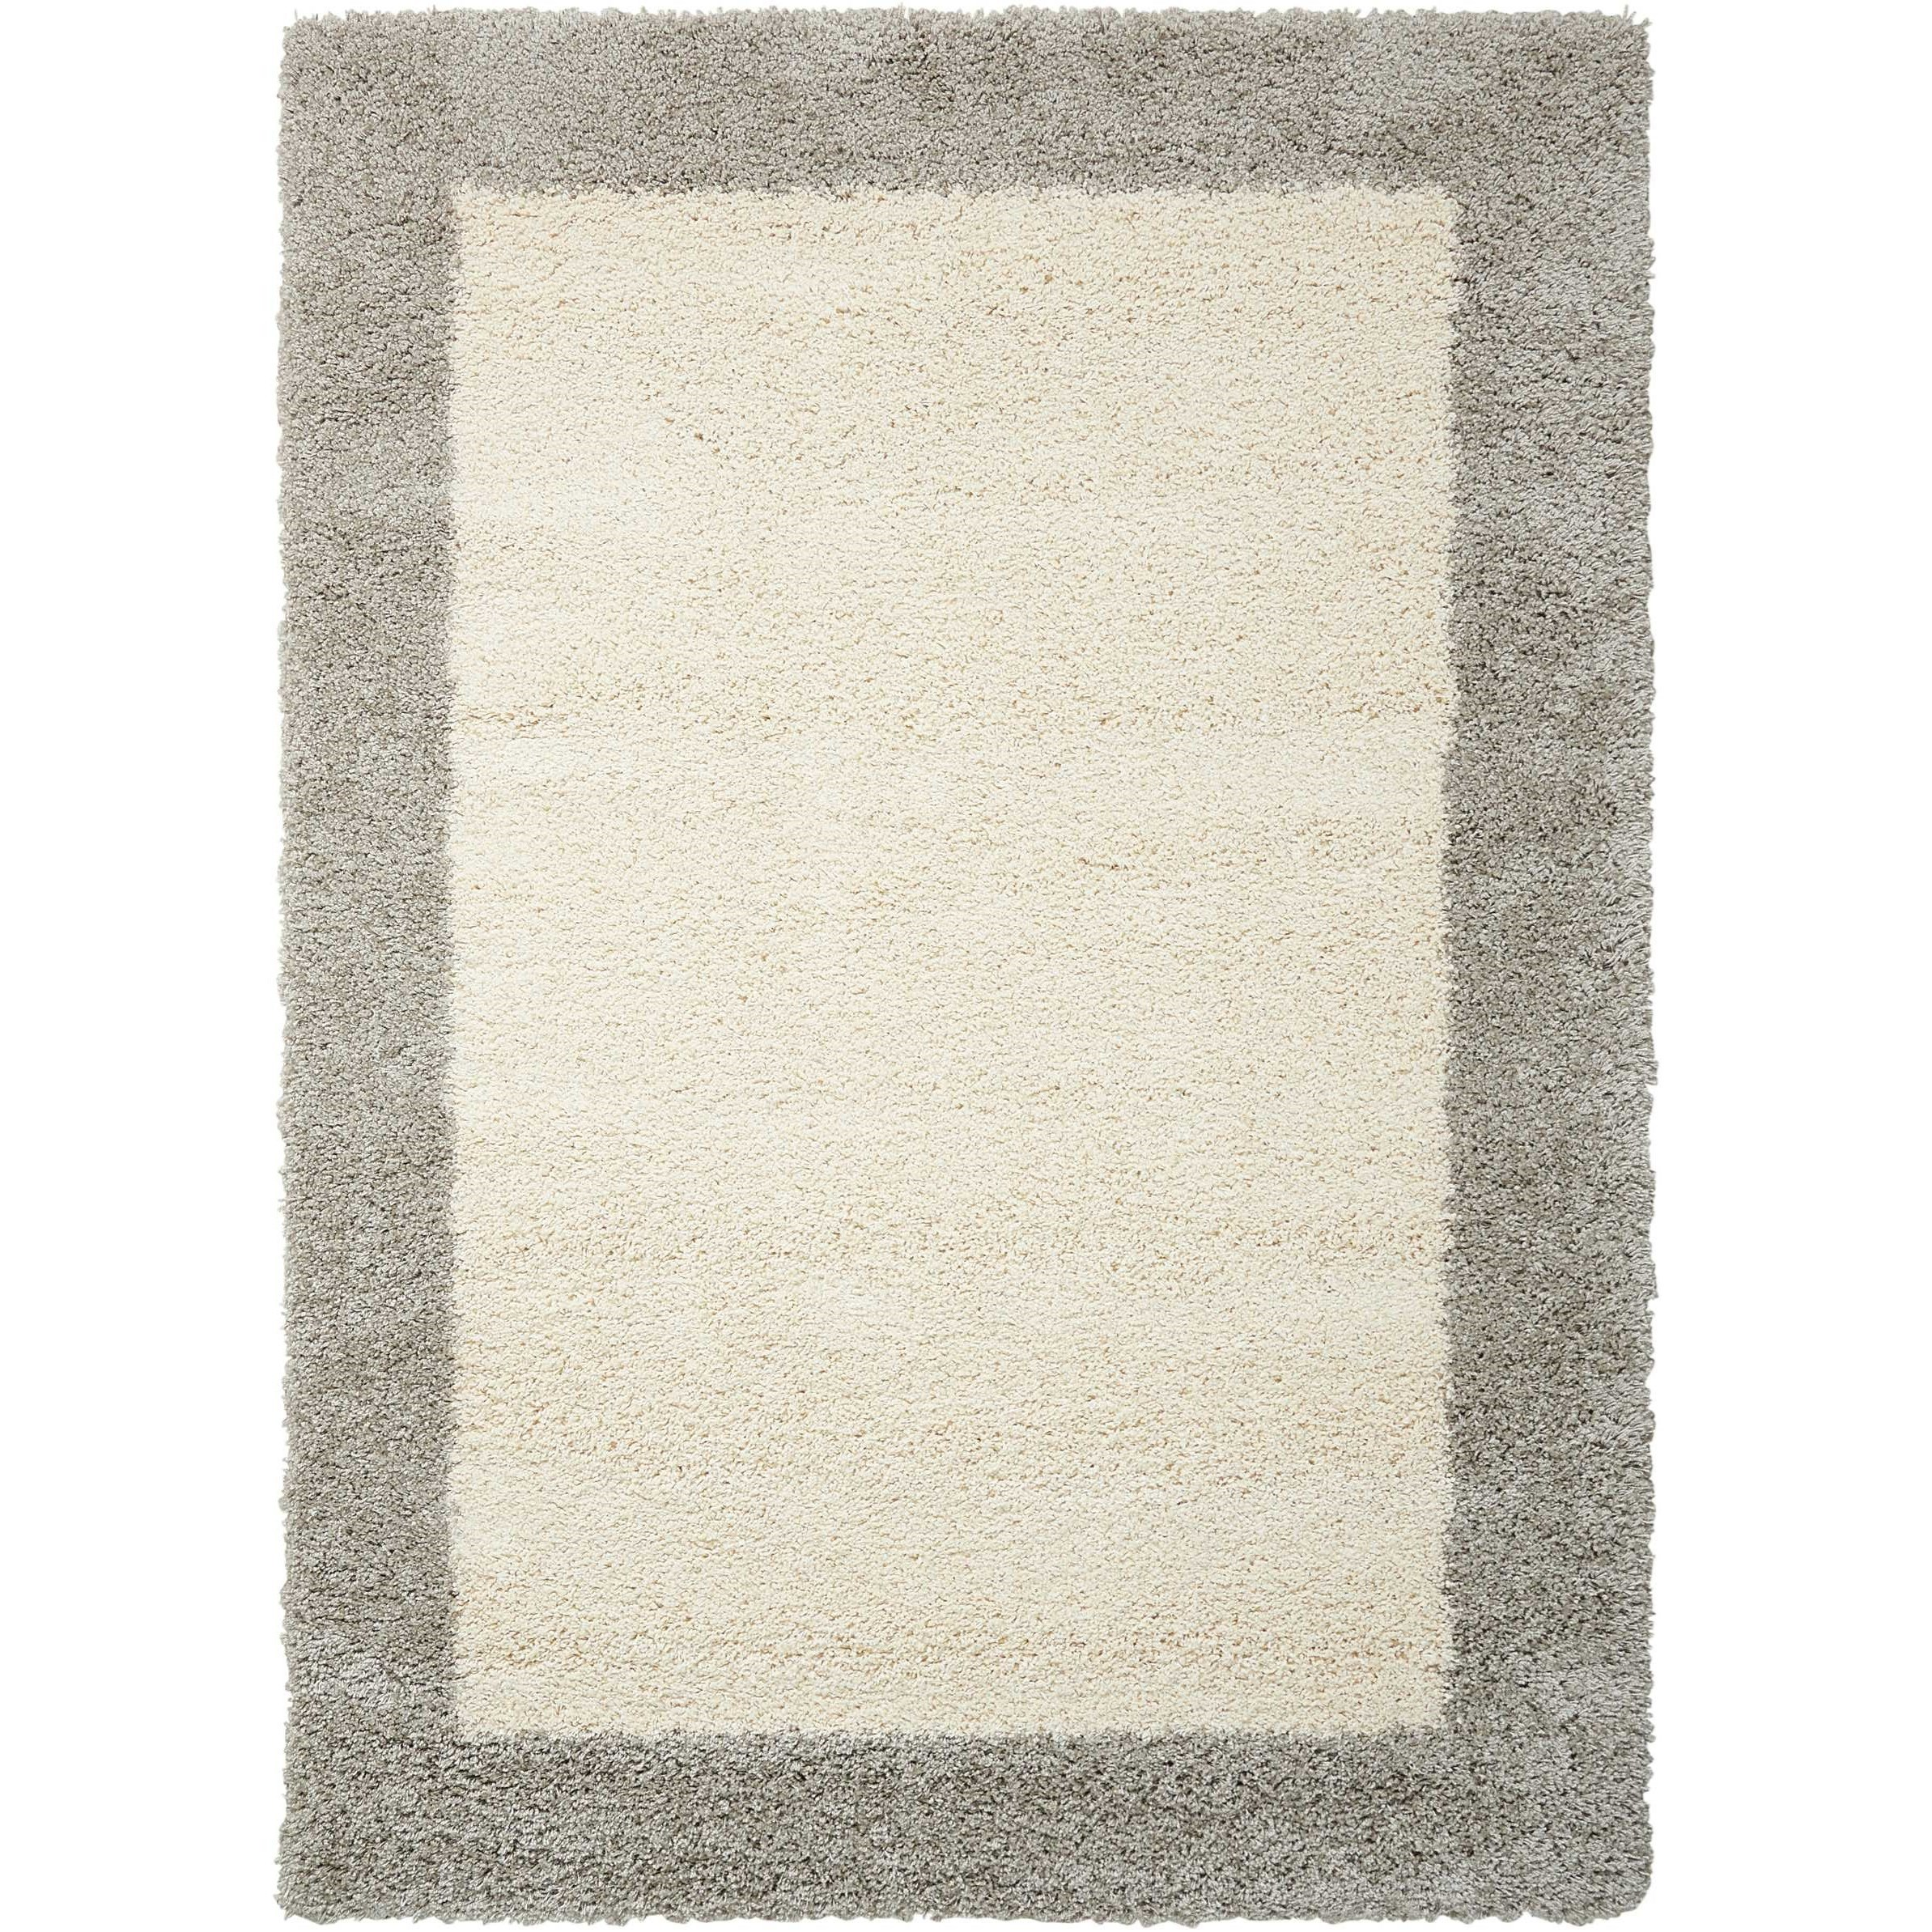 "Amore 7'10"" x 10'10"" Ivory/Silver Rectangle Rug by Nourison at Home Collections Furniture"